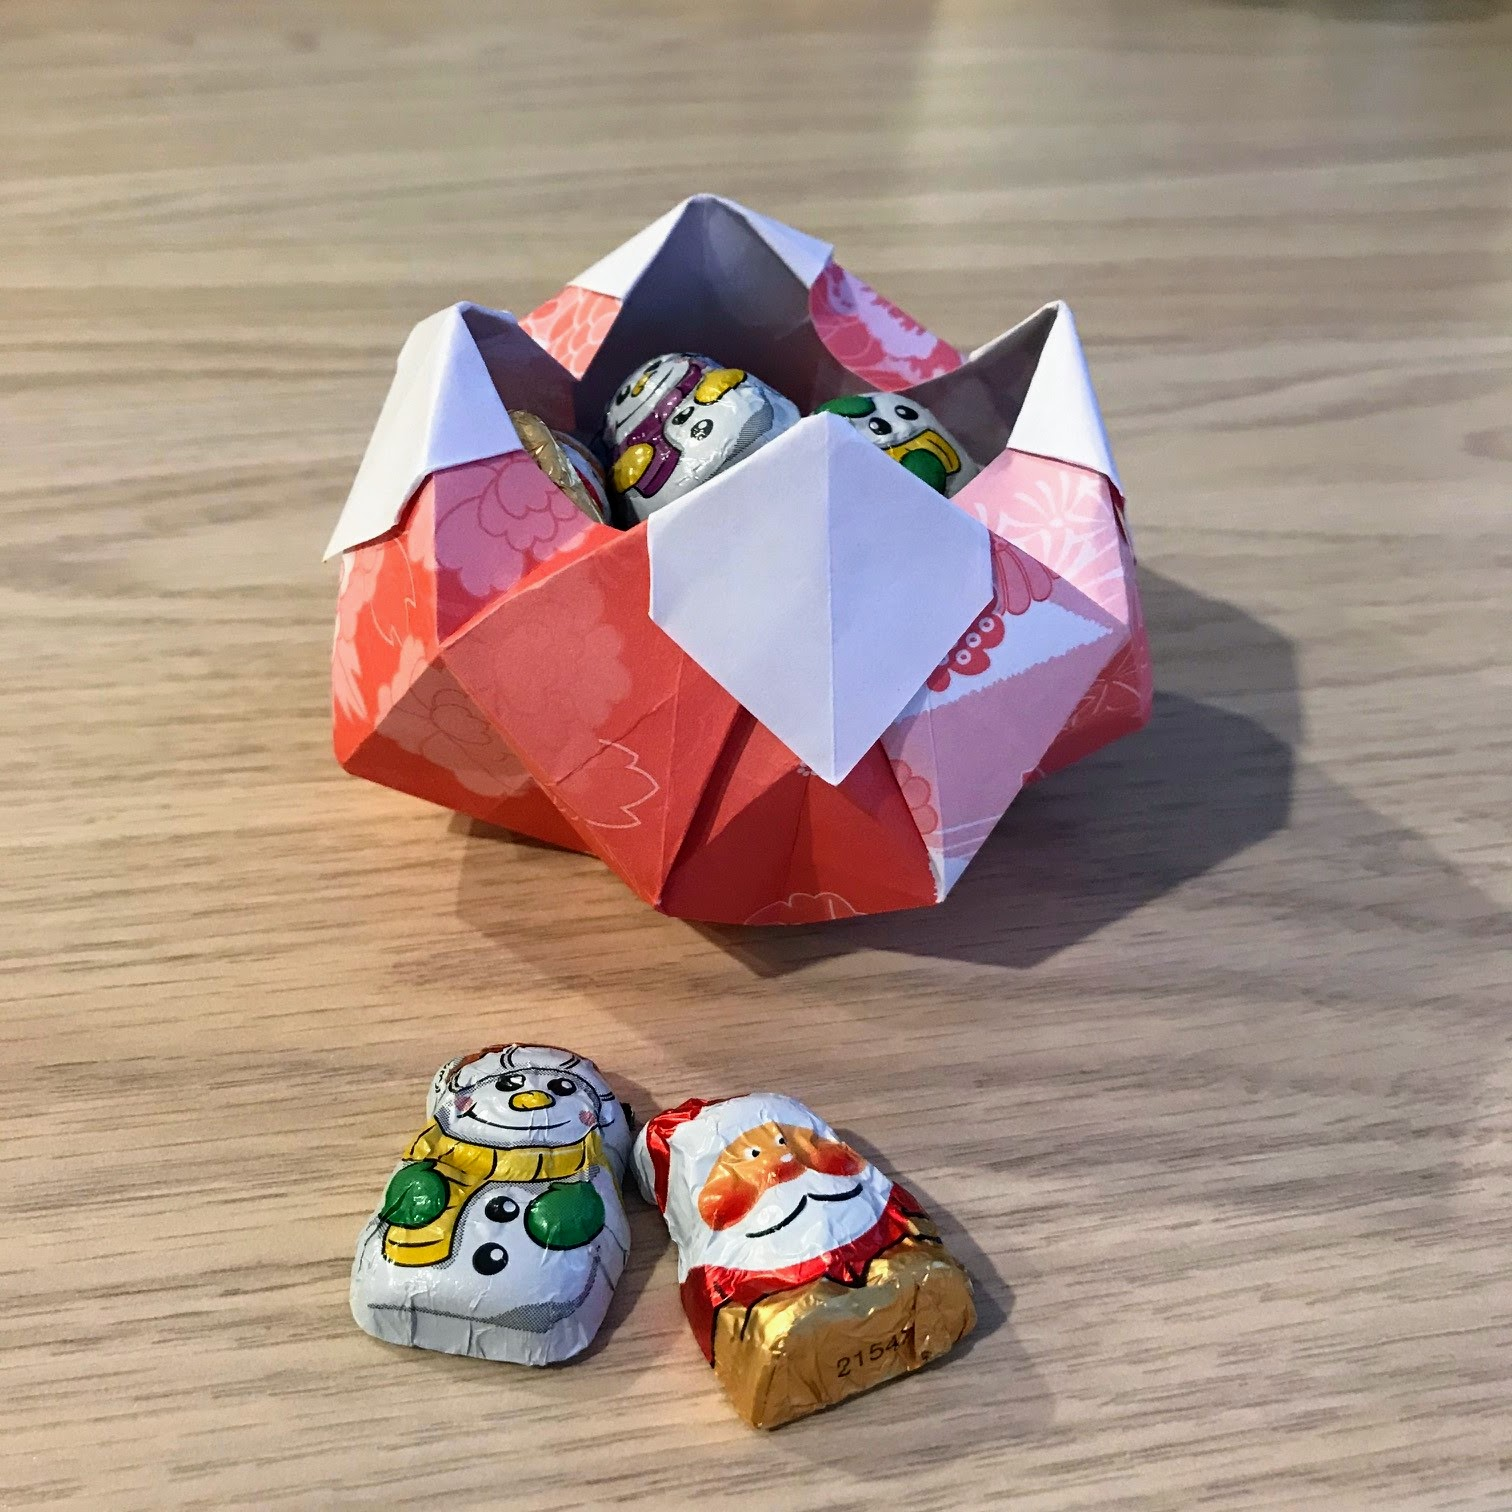 How to make a 3D origami bowl: page 1 | 1512x1512